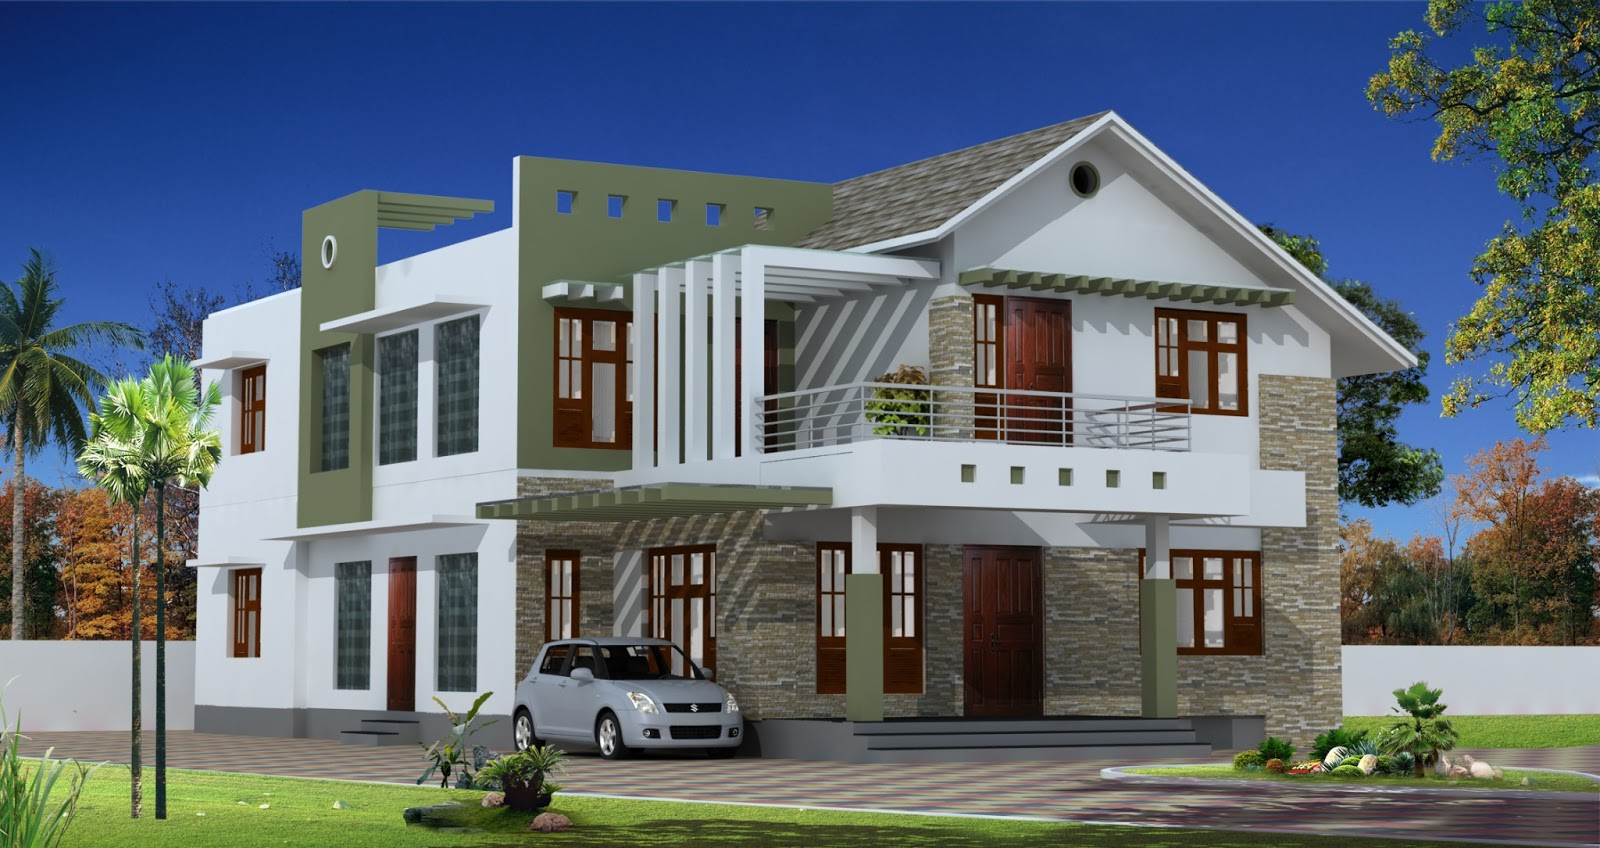 Latest home designs original home designs for Latest house designs photos